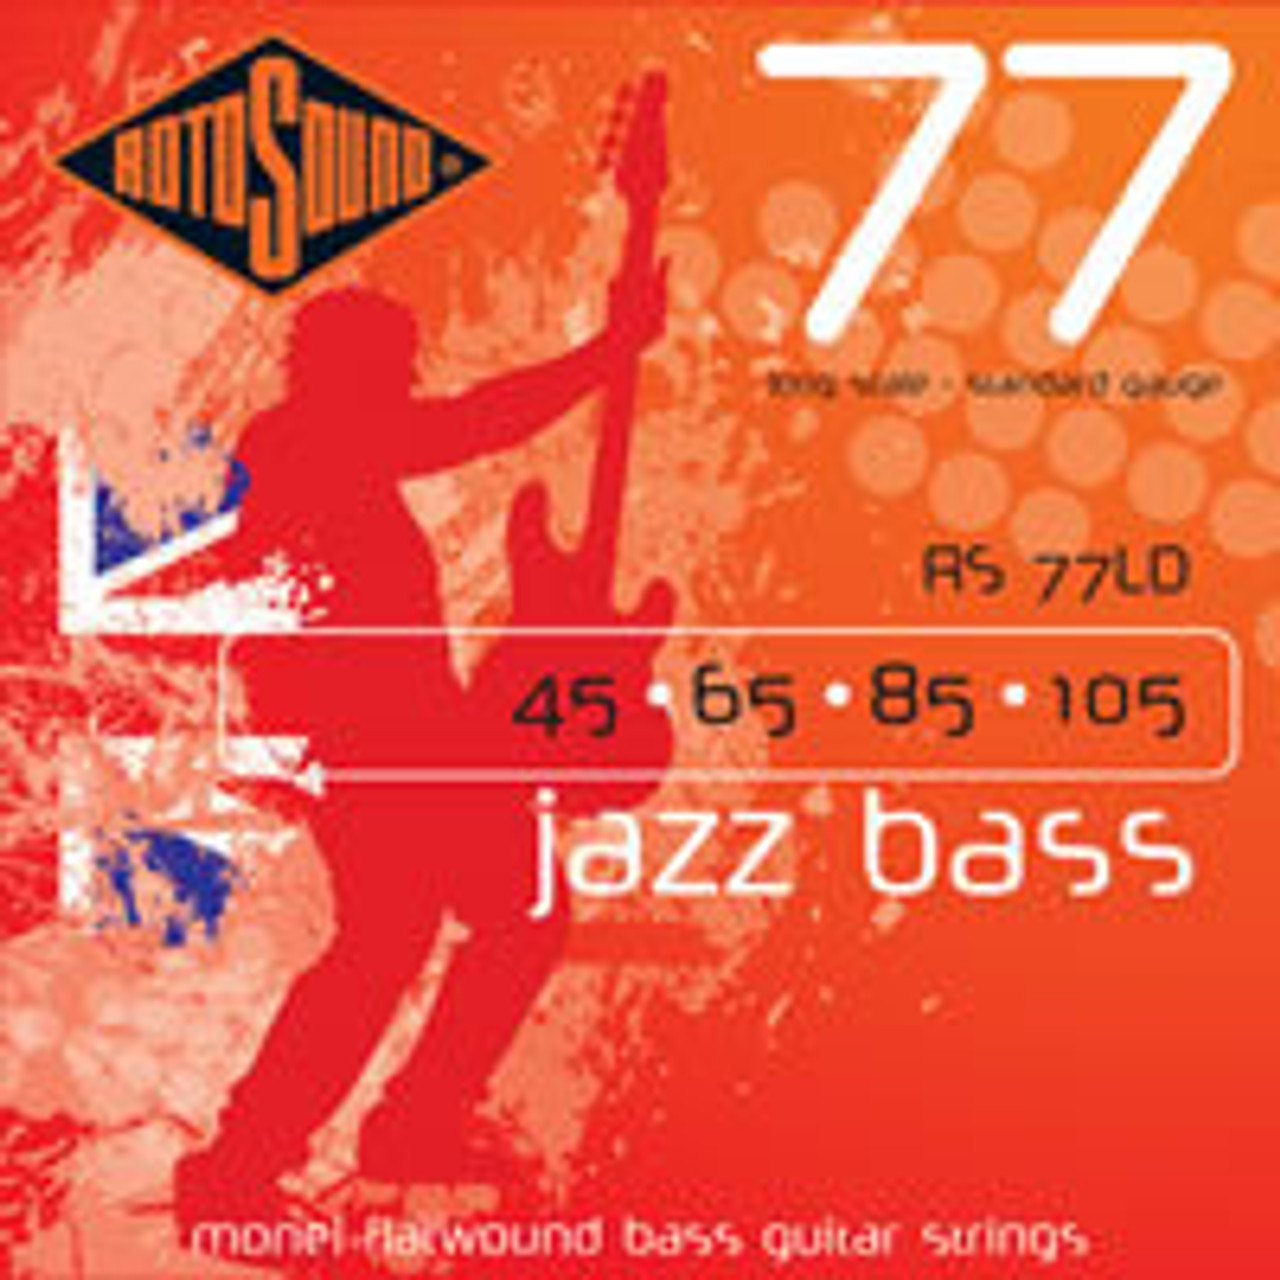 Rotosound 77 Jazz Bass Guitar Strings from superstrings.com